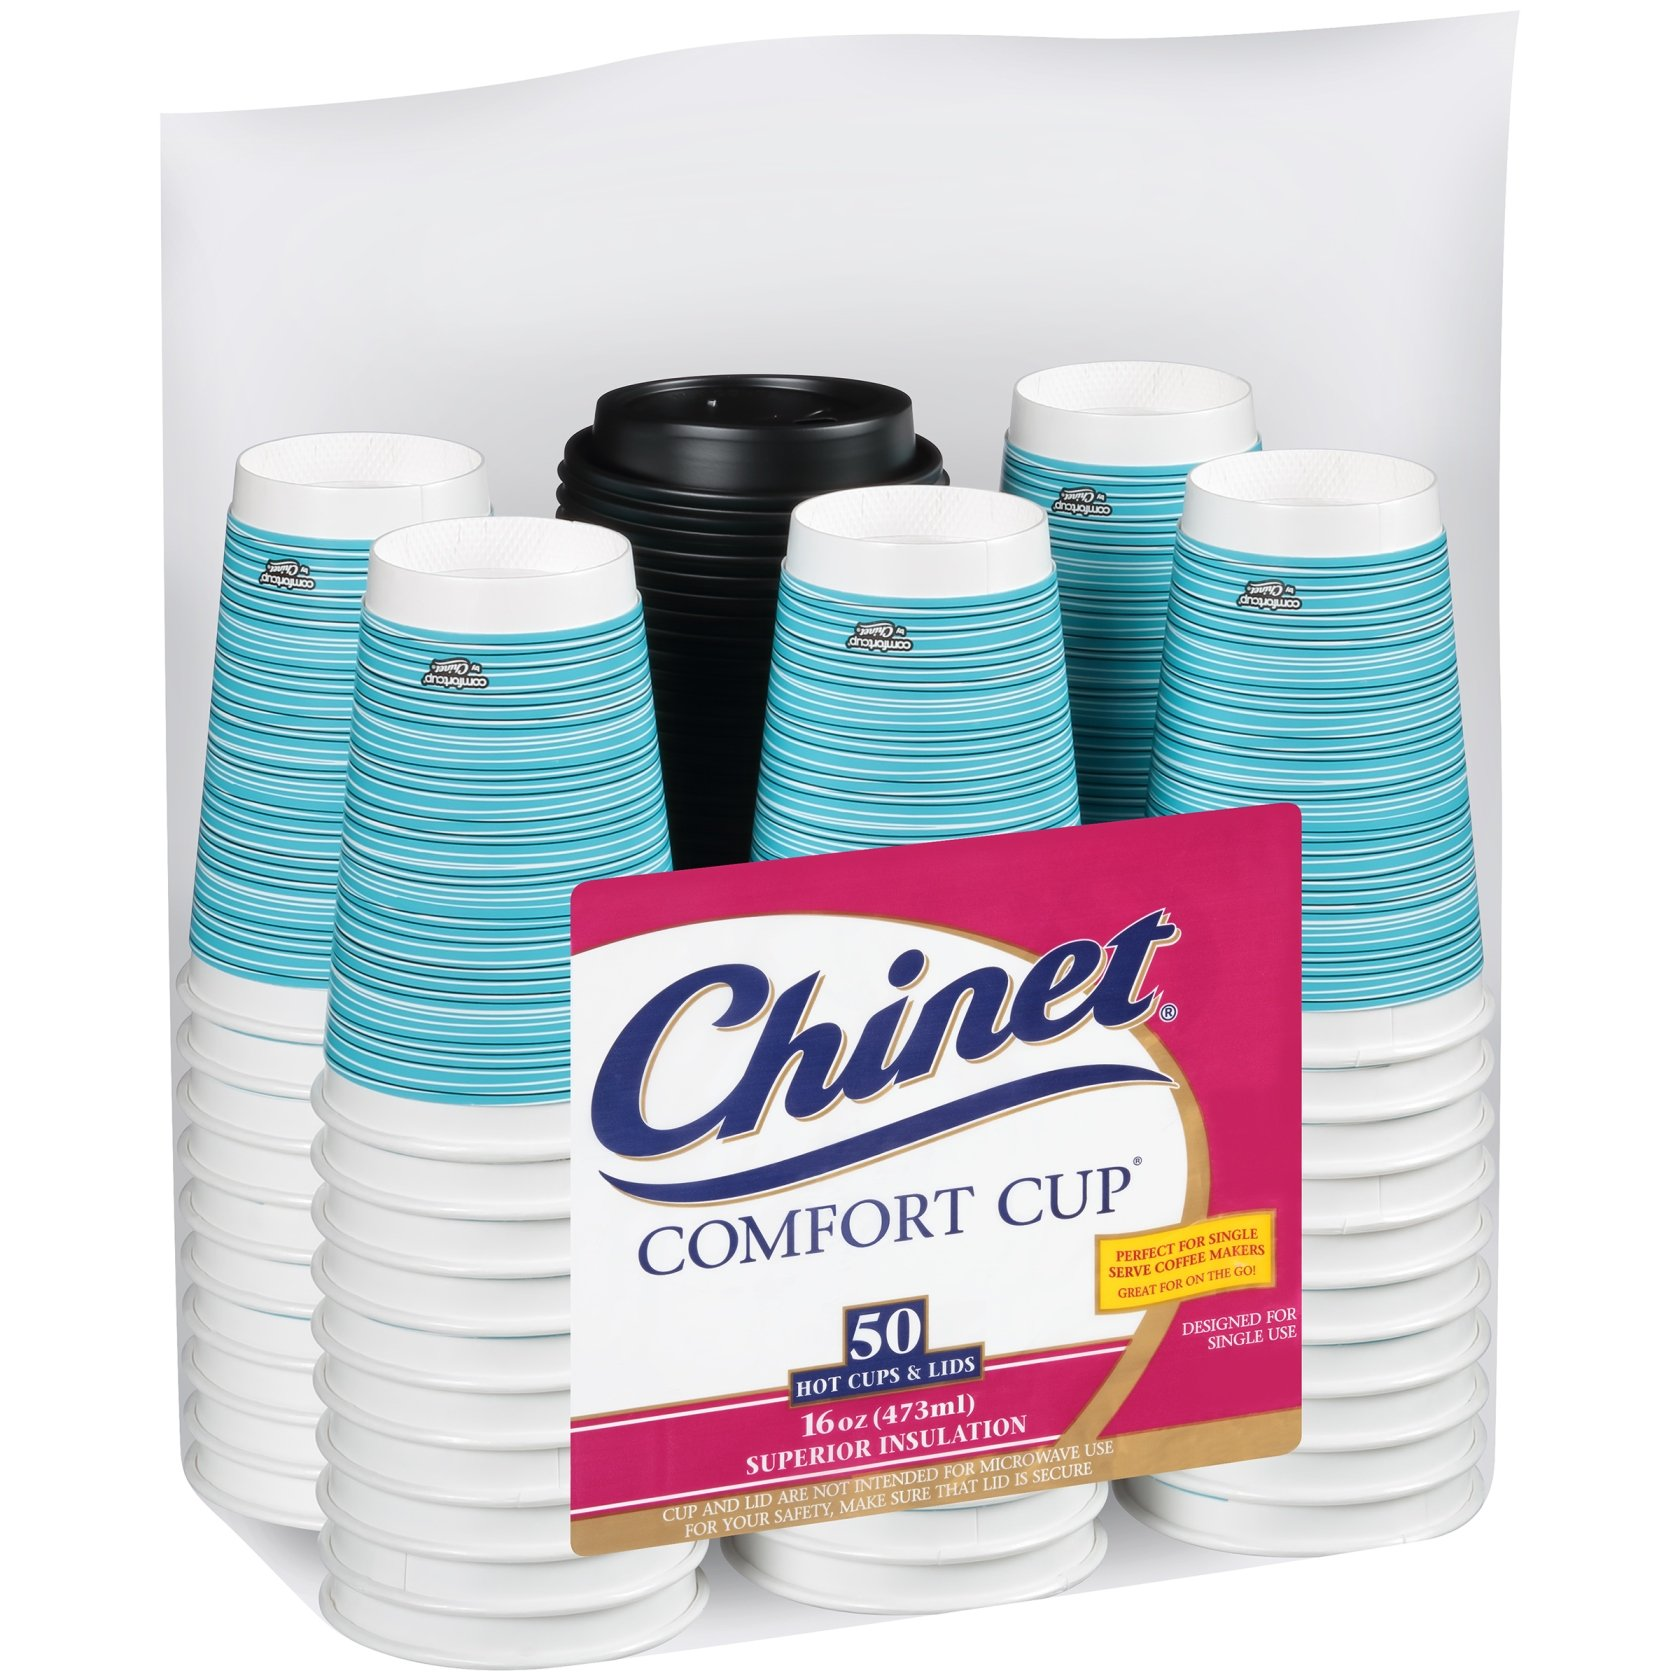 Chinet Comfort Cup 16-Ounce Cups, 50-Count Cups & Lids (Assorted Colors)